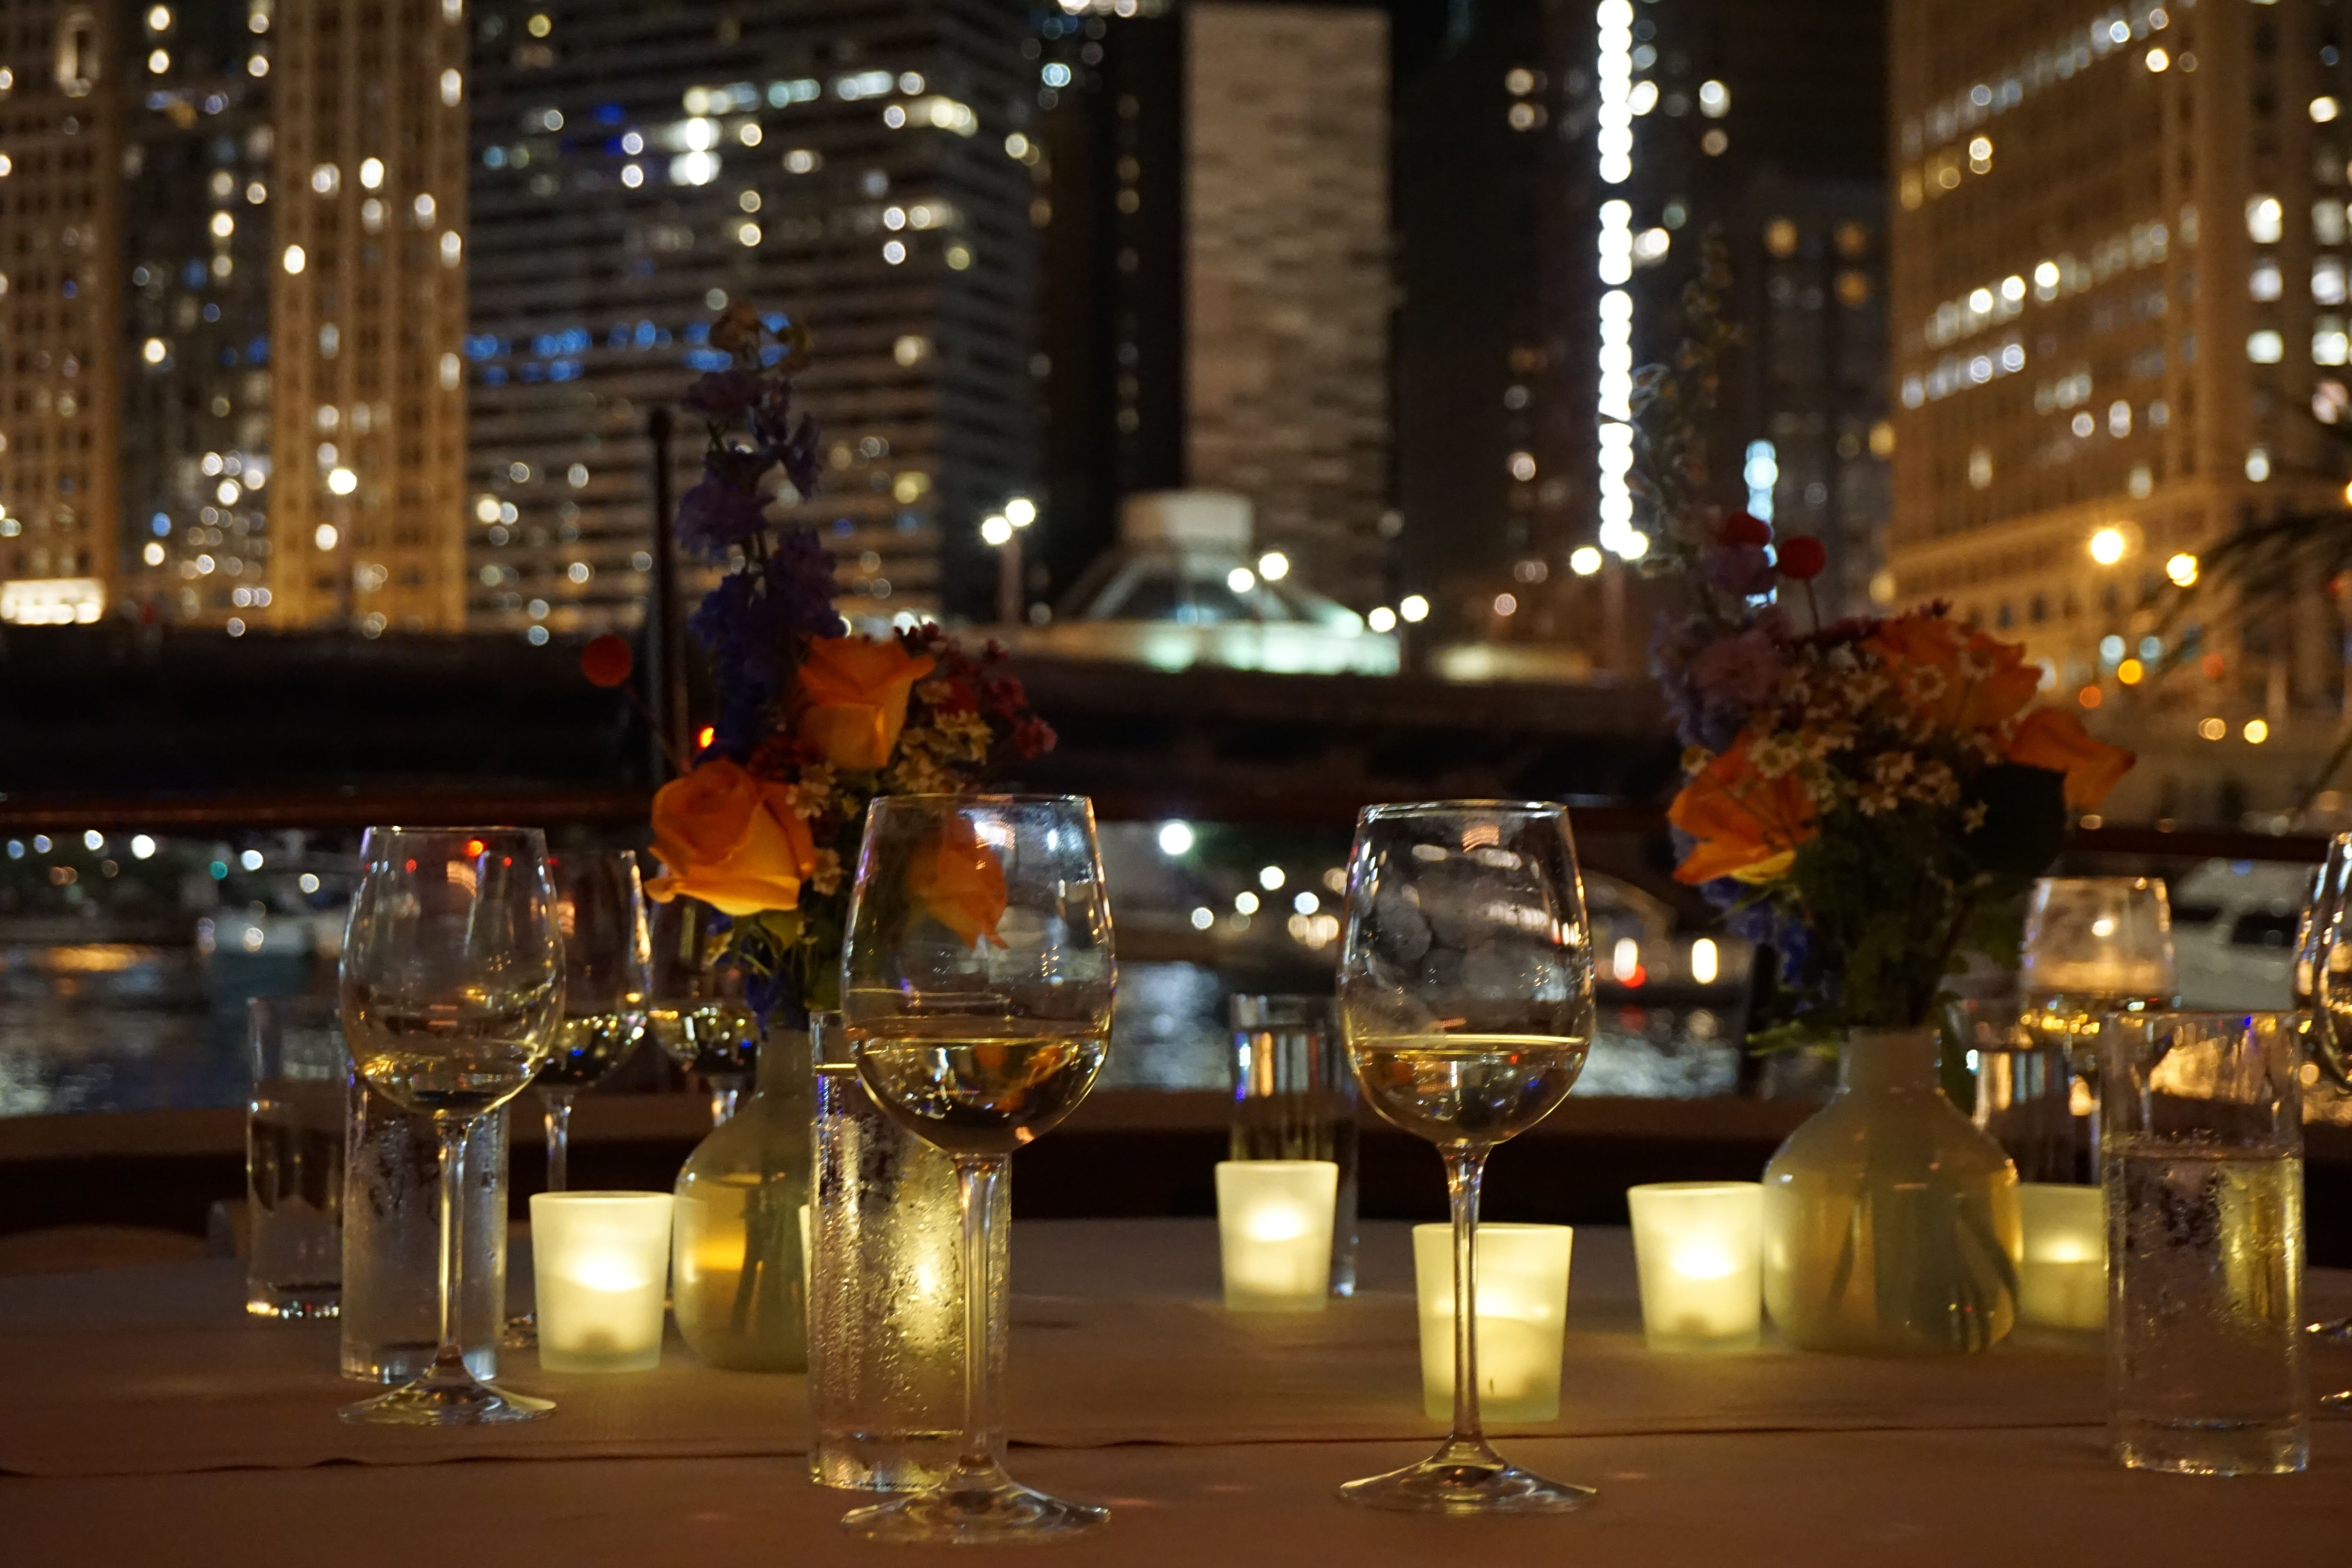 Adeline's Sea Moose is Chicago Private Yacht Rentals premier floating venue! Docked seasonally at Burnham Harbor near downtown Chicago, she is the perfect floating venue for all types of events and celebrations! Host your own private fireworks show! www.chicagoprivateyachtrentals.com #navypier #customevents #navypierfireworks #fireworks #lakemichigan #burnhamharbor #buckinghamfountain #adelinesseamoose #chicagoprivateyachtrentals #pirvateyacht #floatingbar #floatingvenue